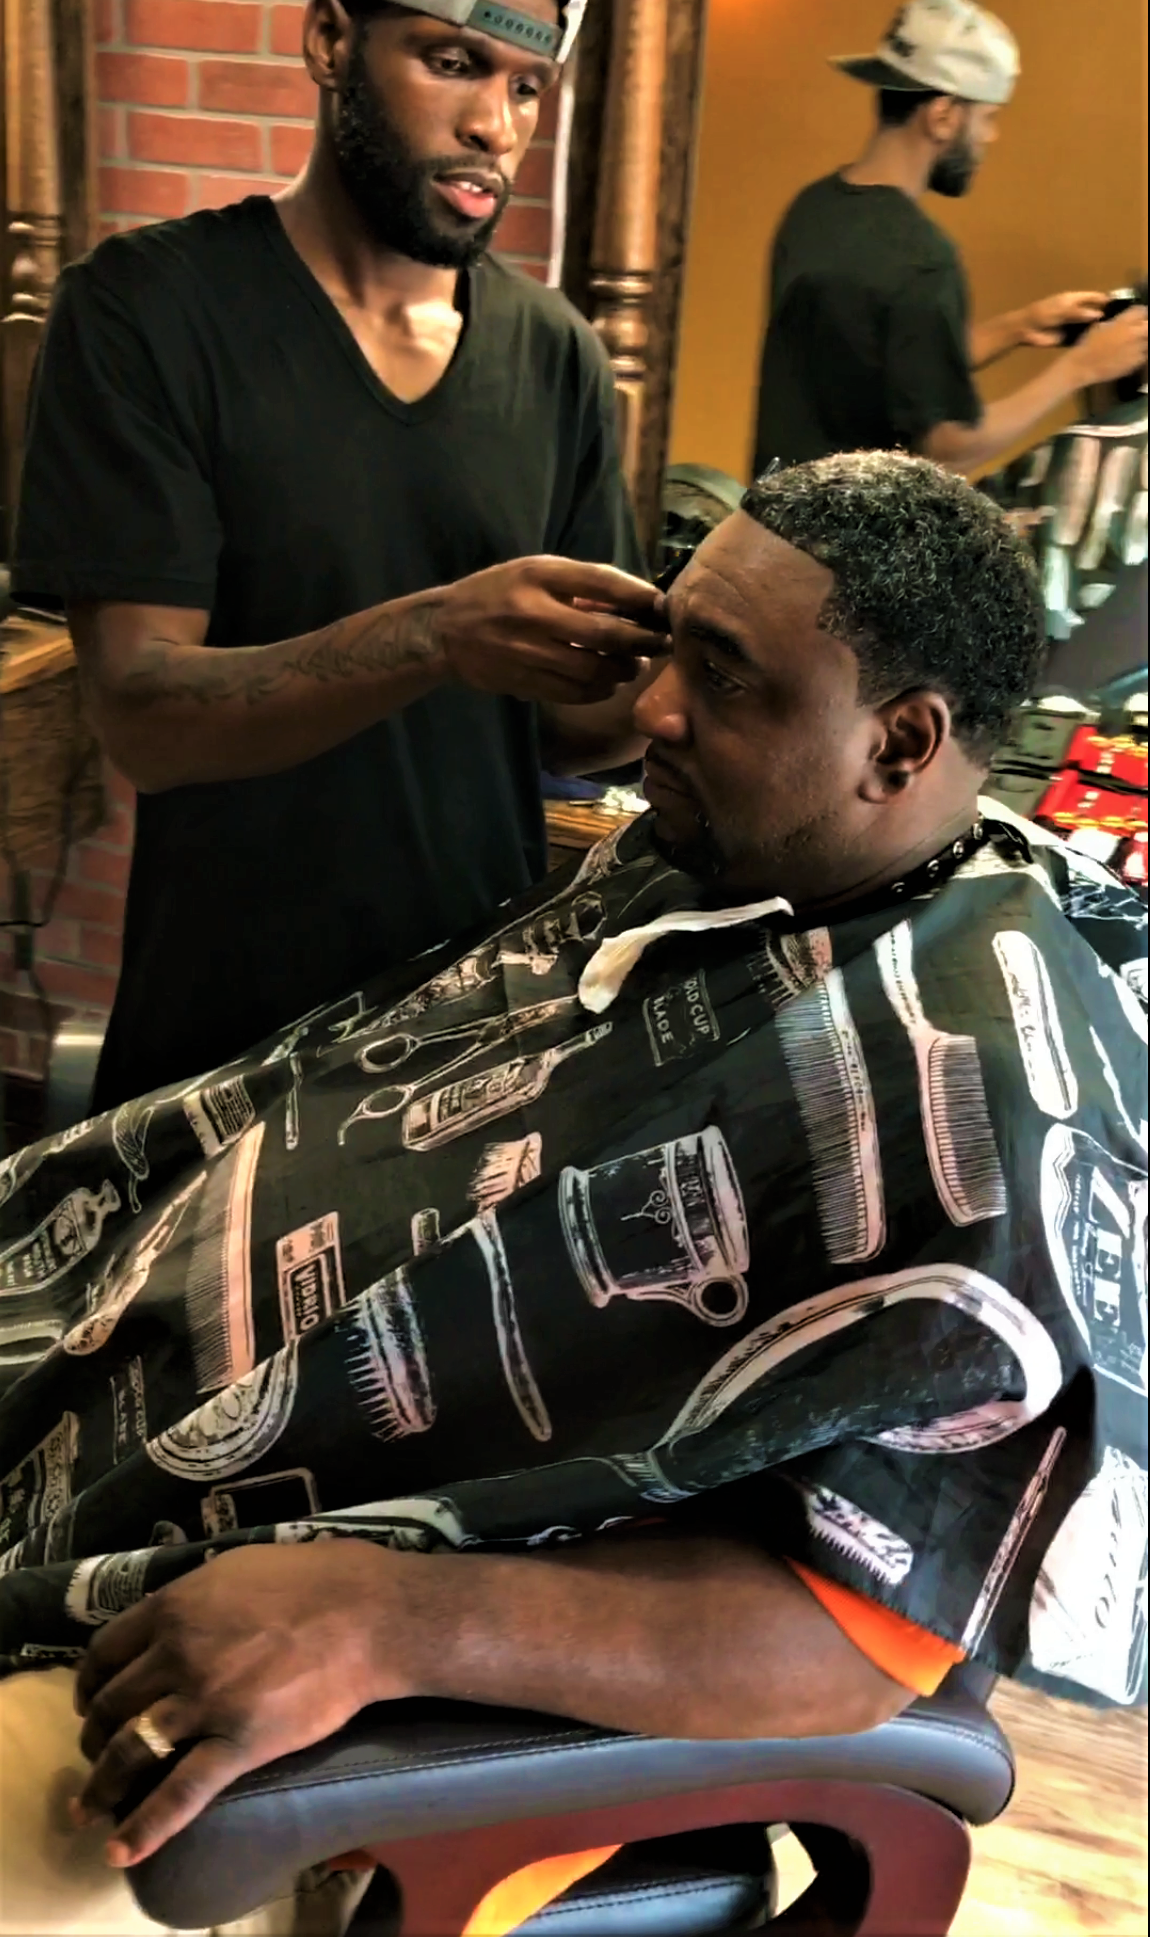 Jay the Barber